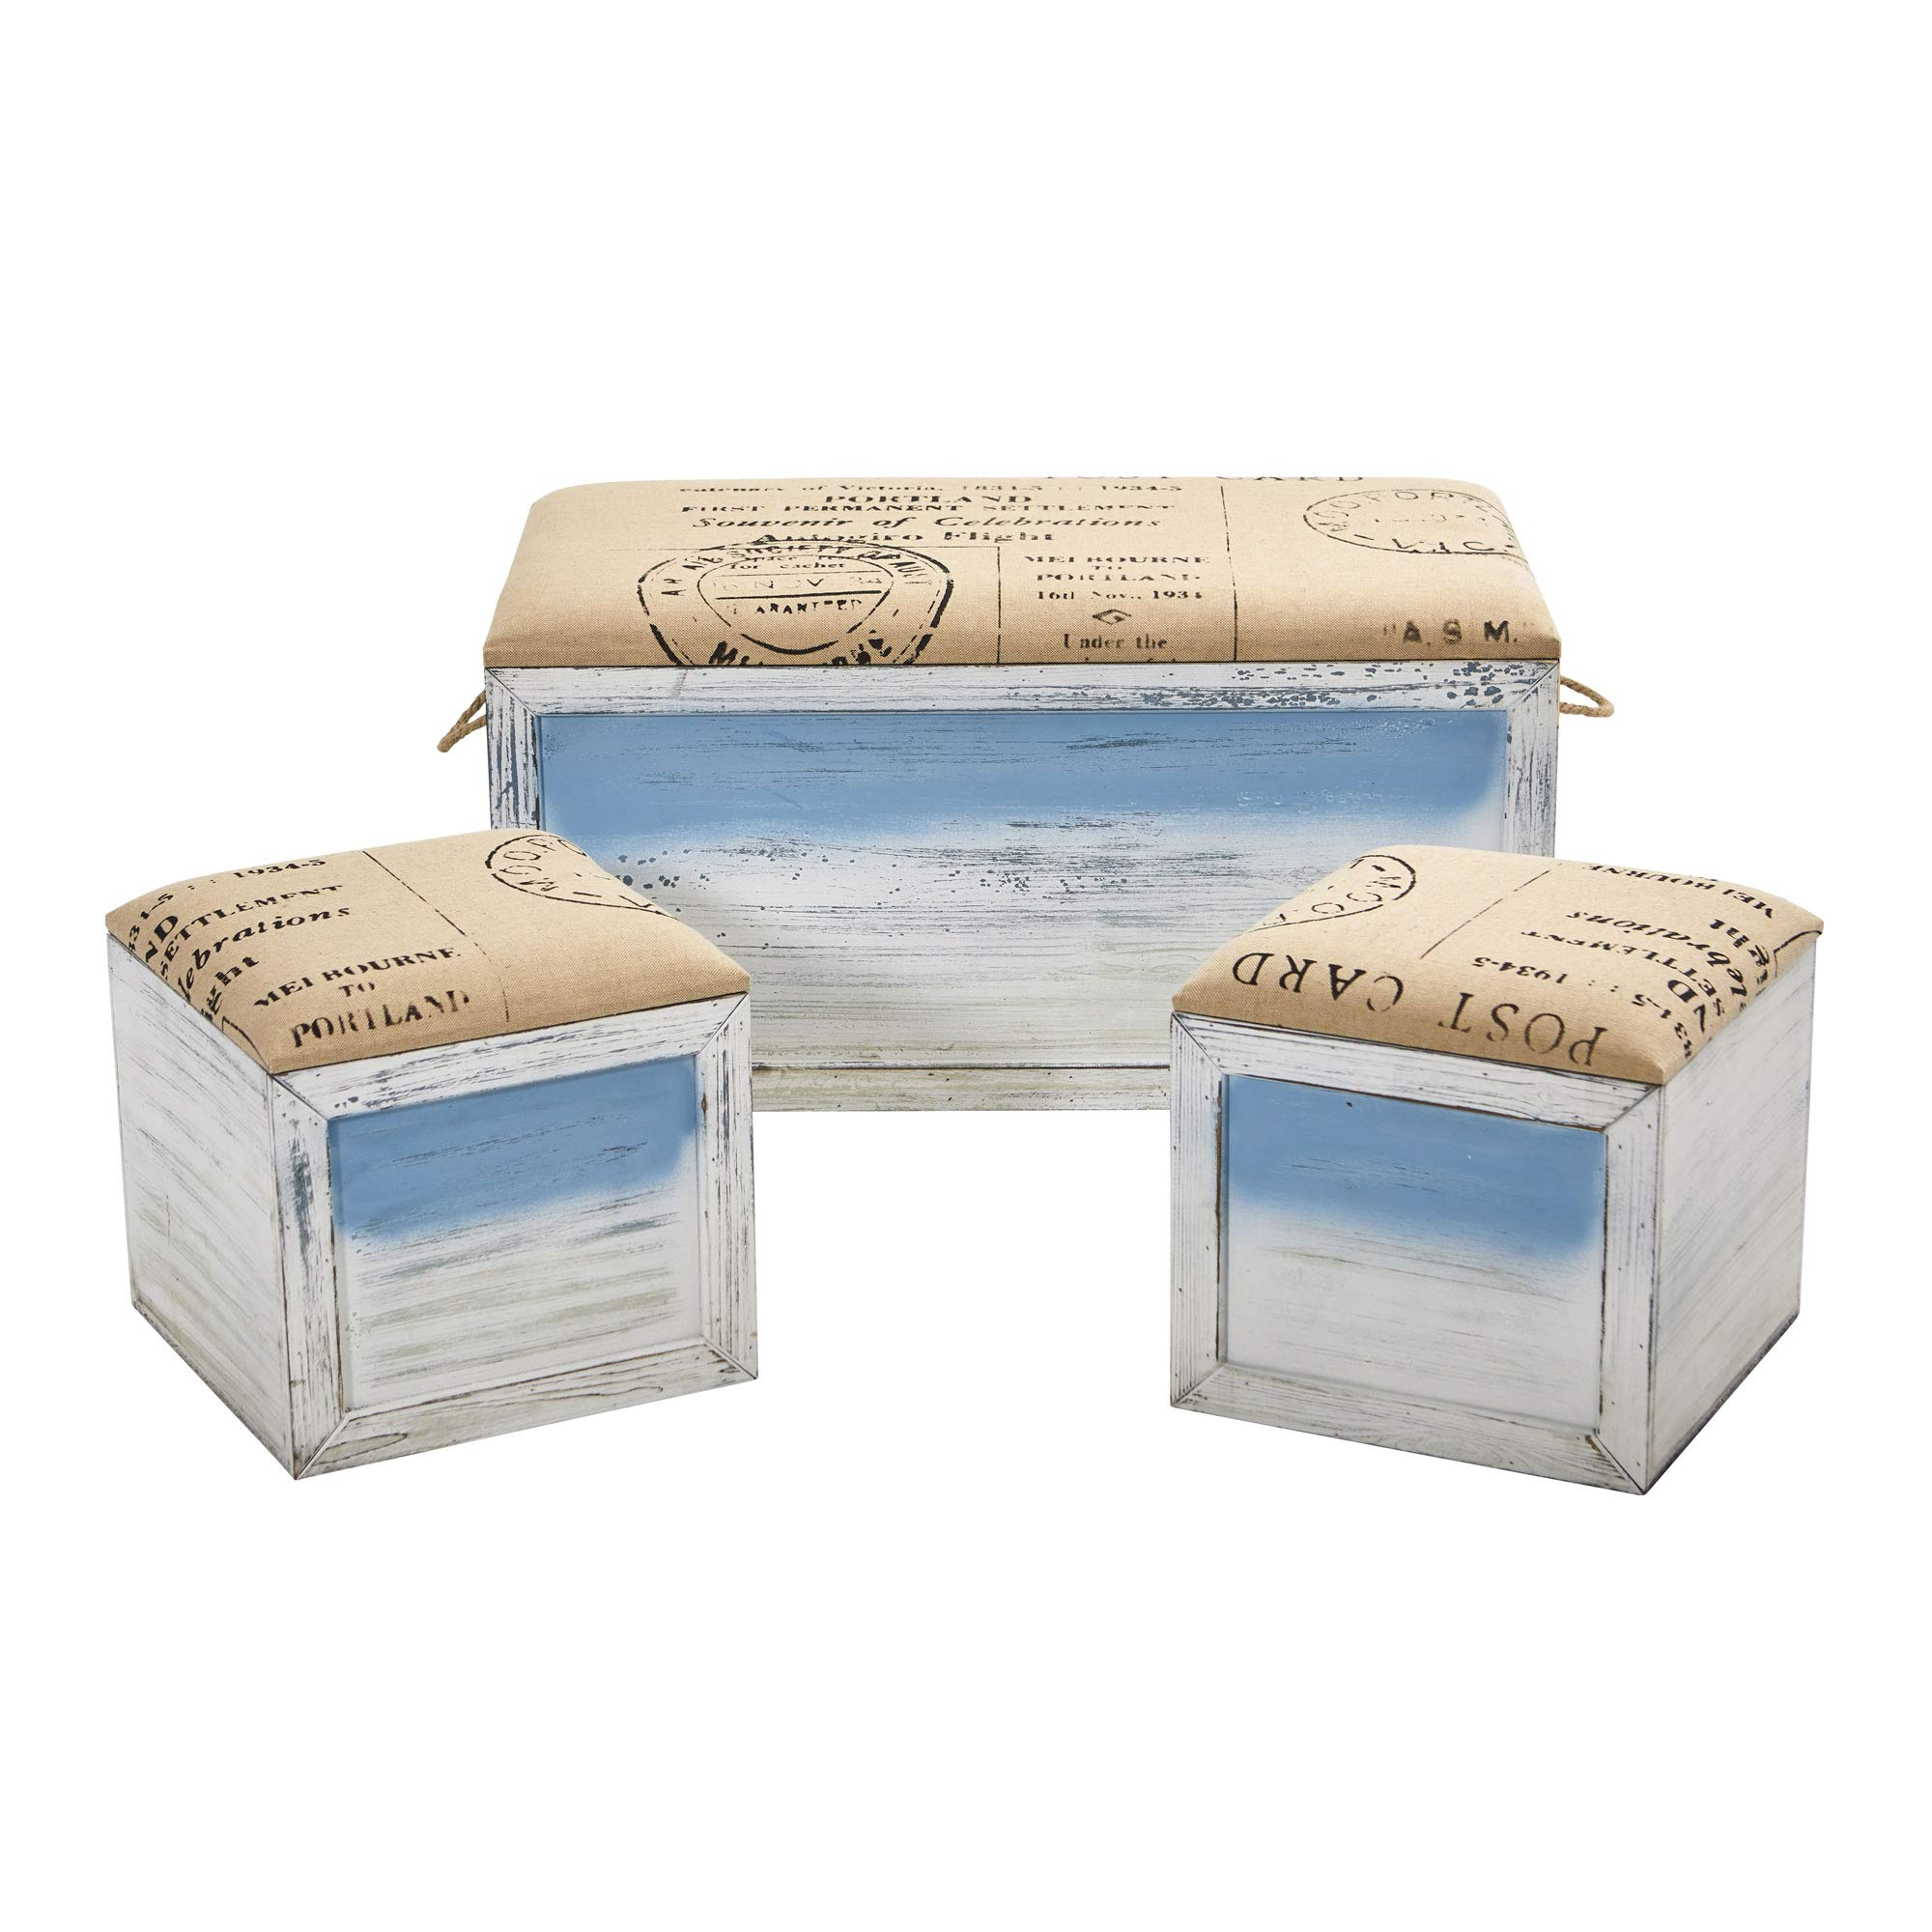 GREATHOPES Ocean Breeze Storage Boxes Bench and Seating Set (Set of 3) Silk Flowers